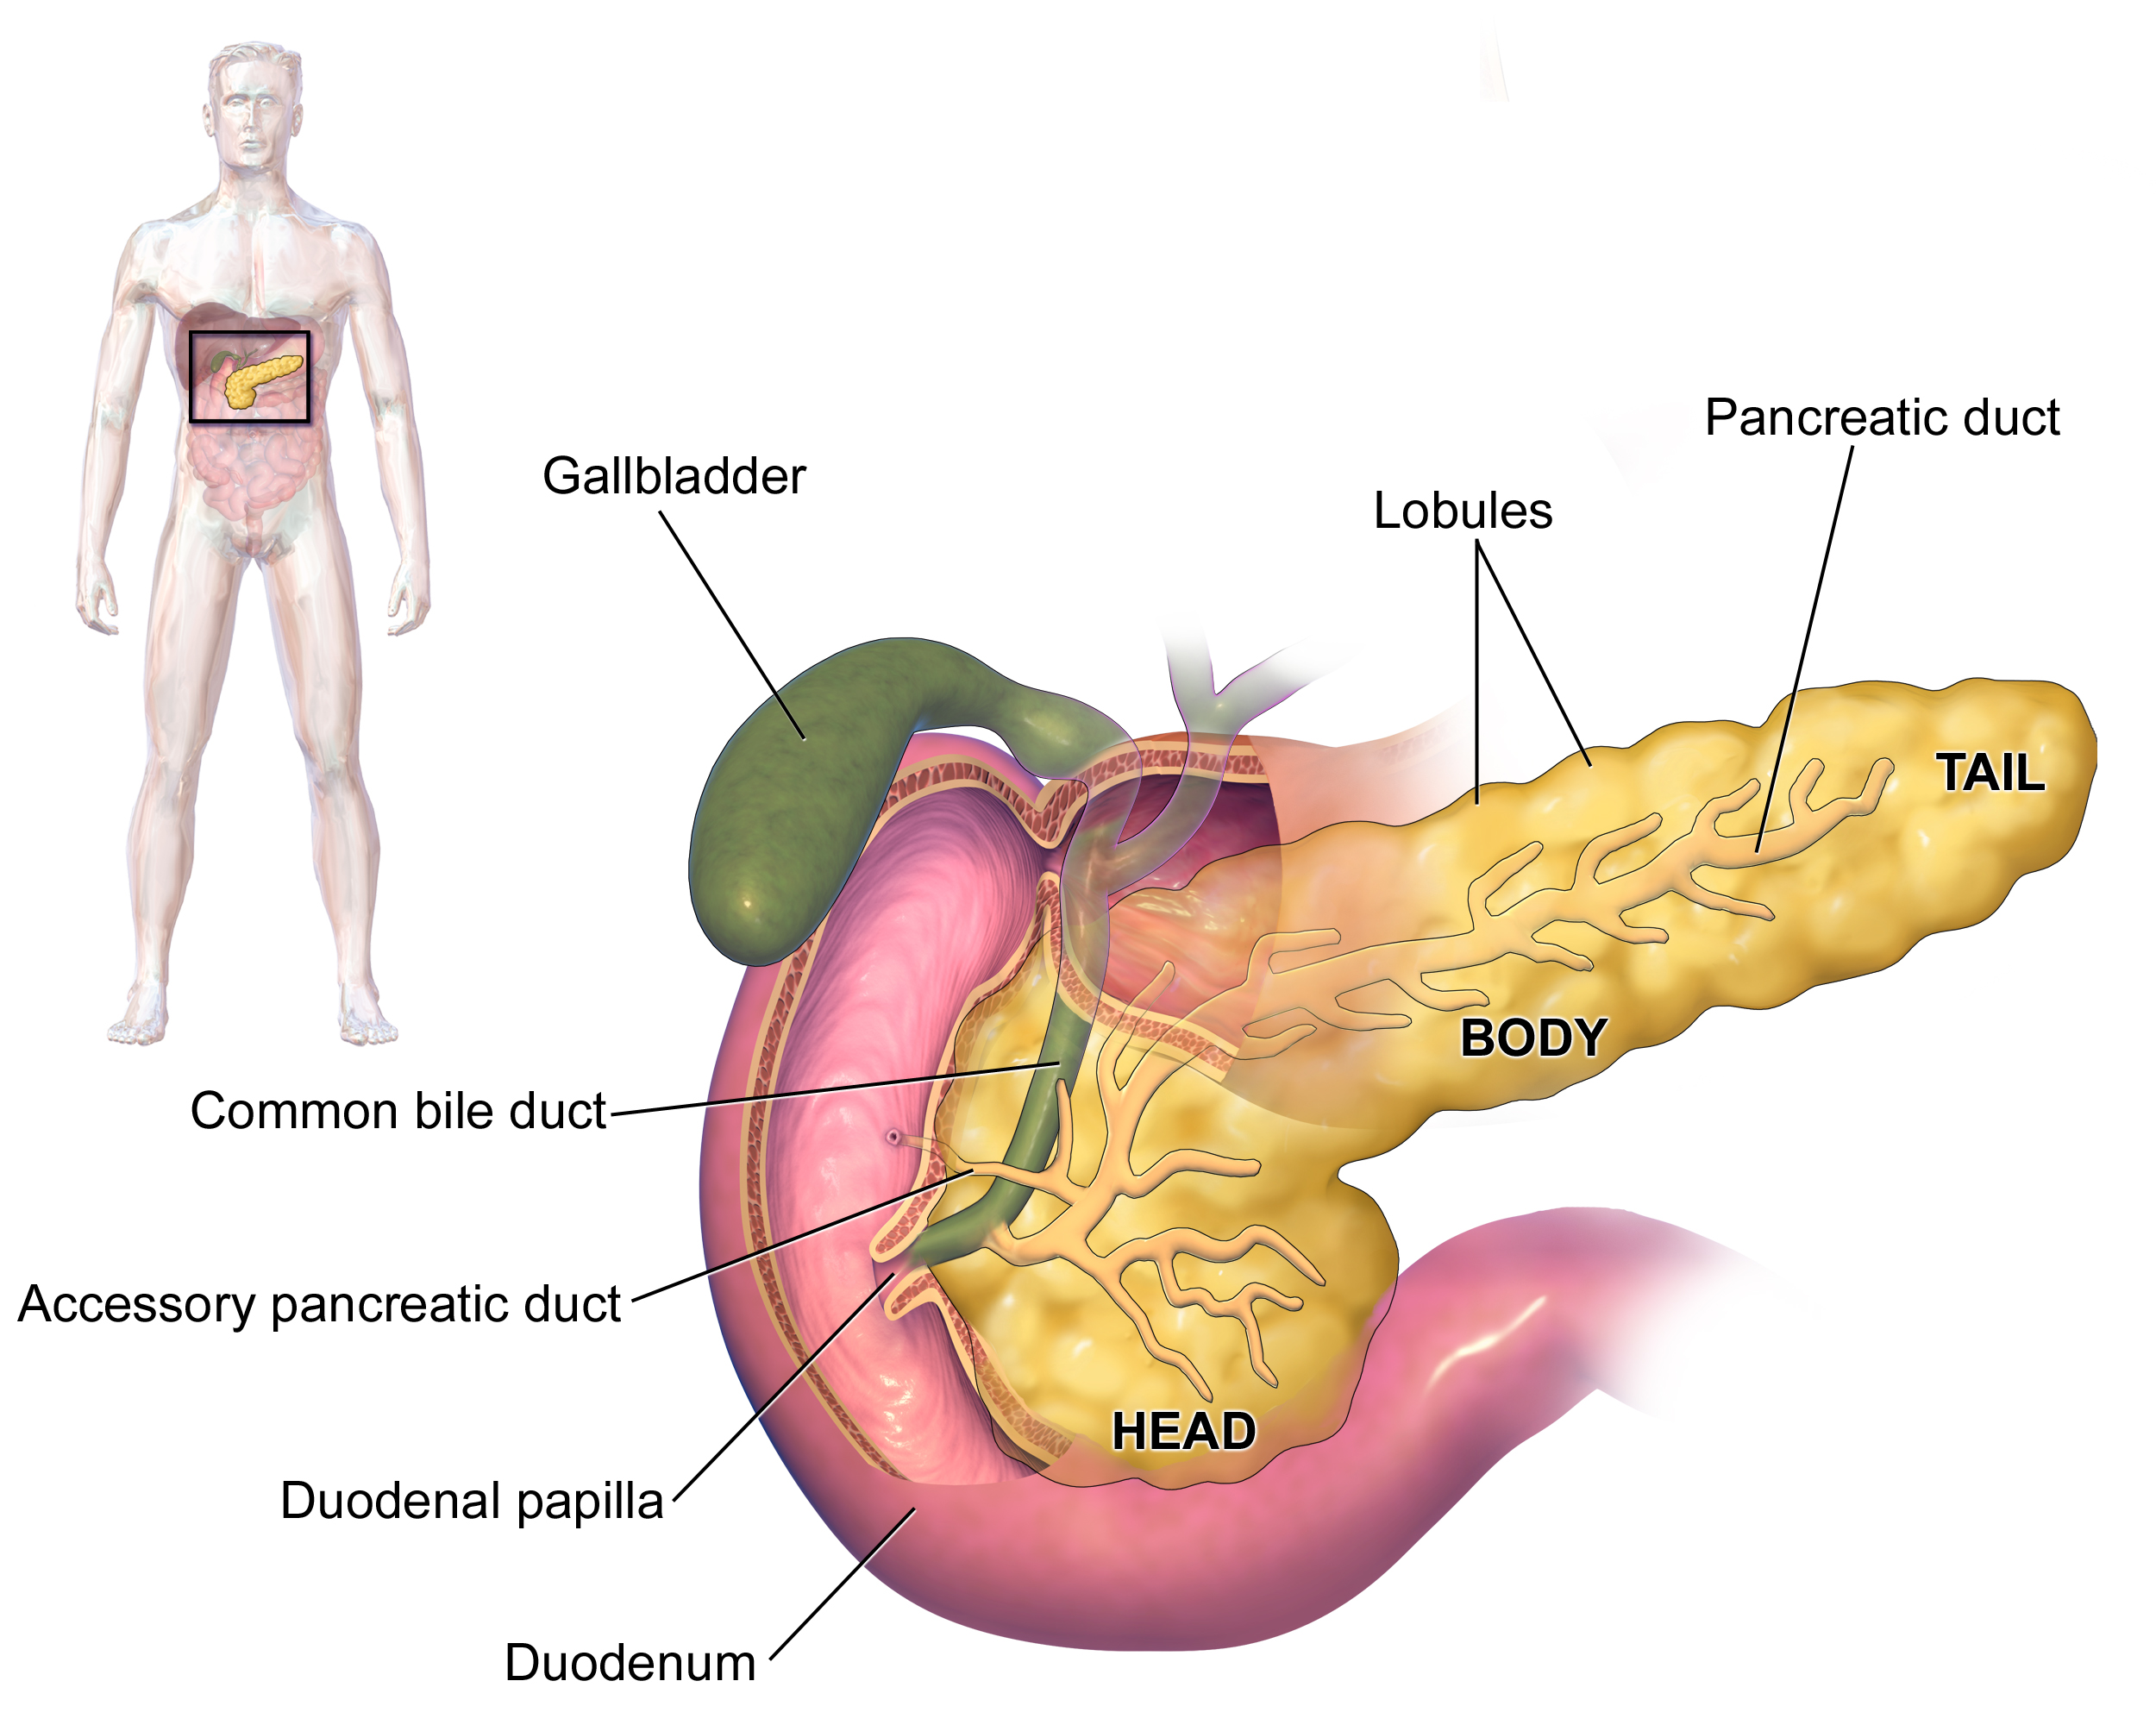 Digestive system structure of digestive system structure of digestive system ccuart Image collections